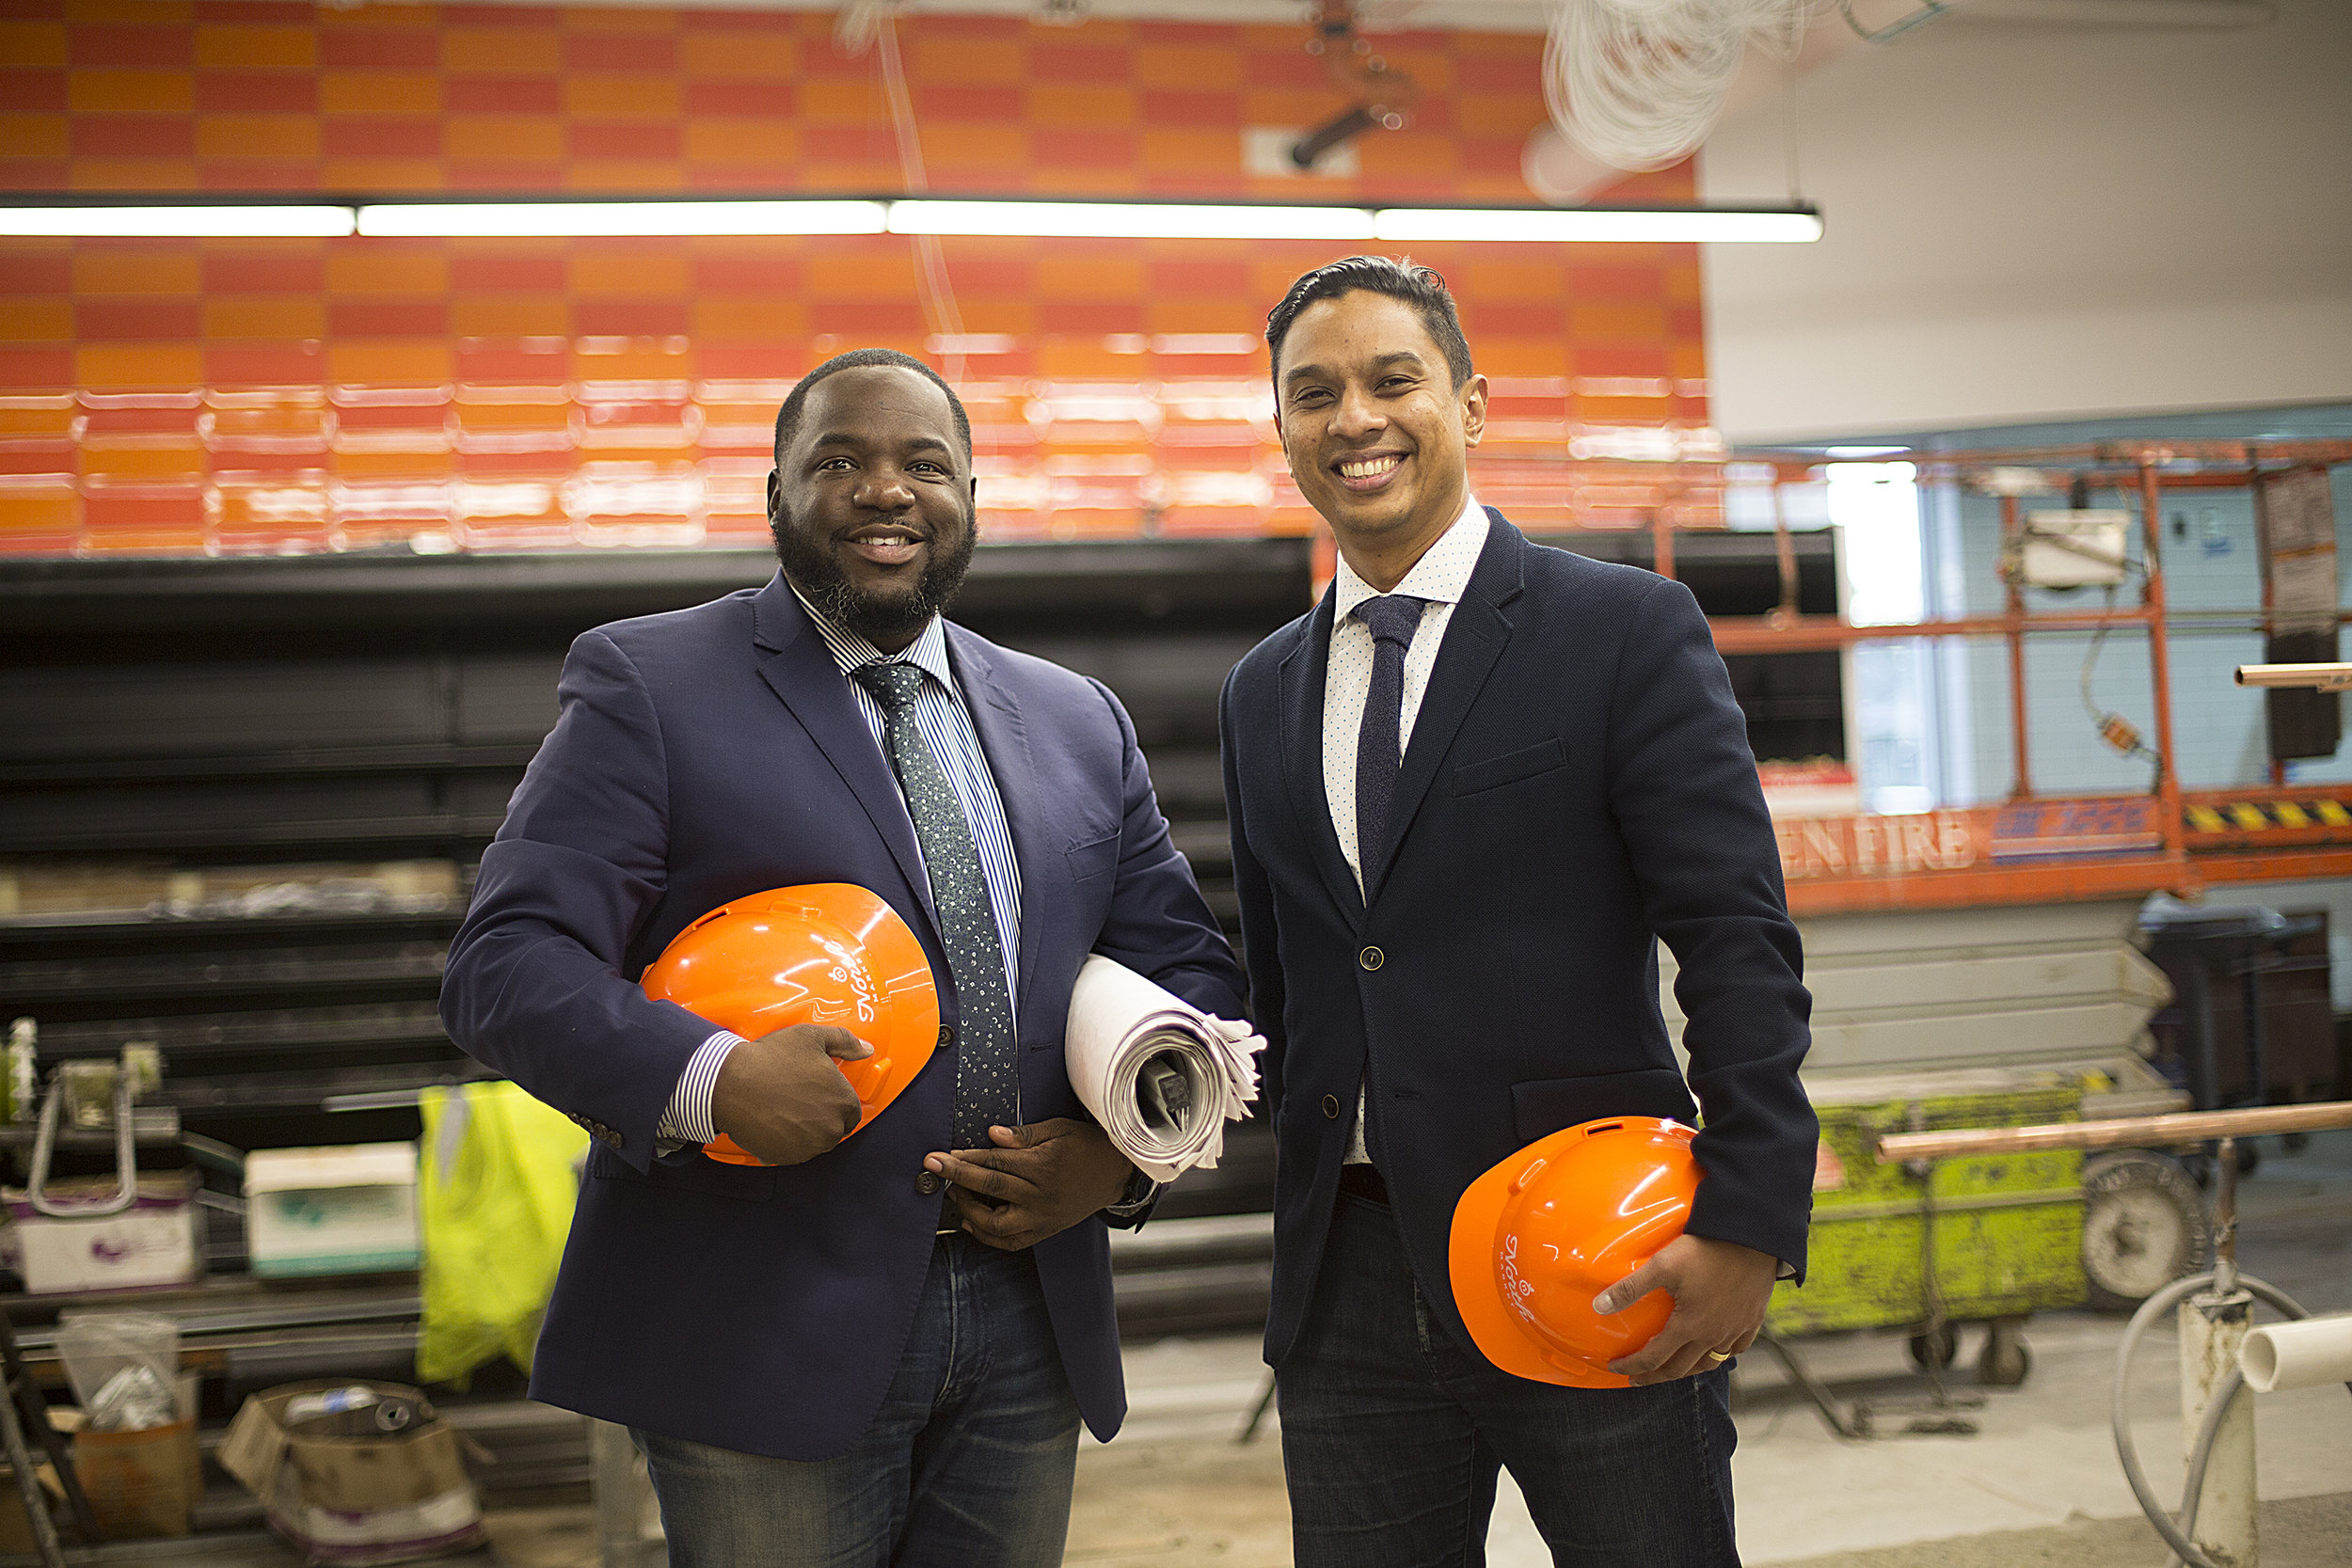 North Market project leaders, Adair Mosley and Vanan Murugesan, have spent three years bringing North Market to life.  Photo by David Pierini.